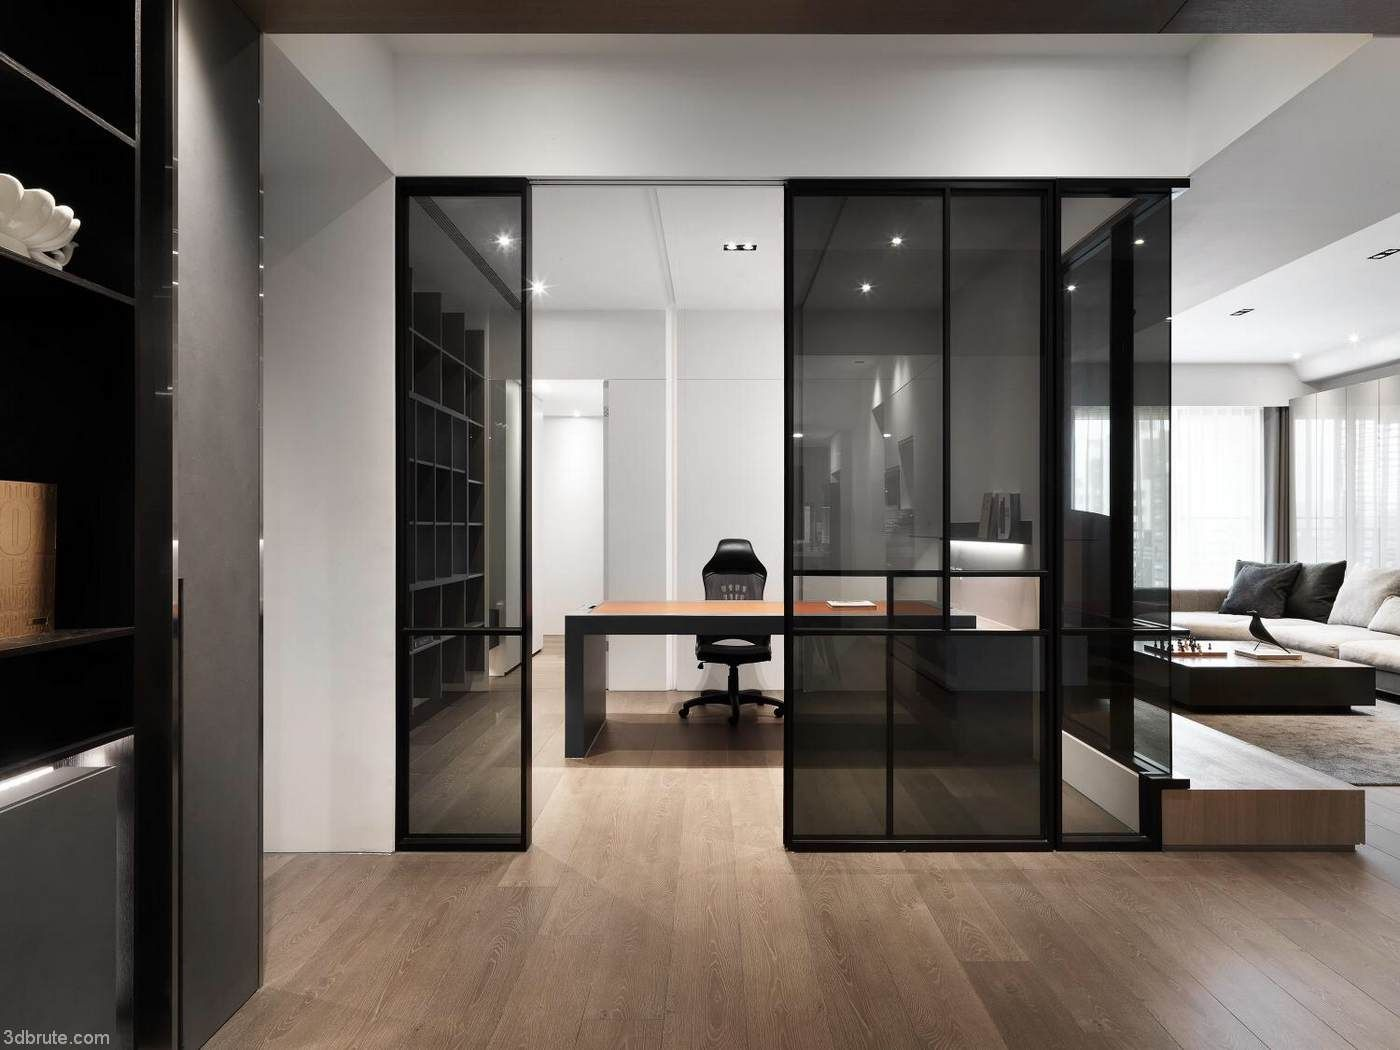 Sub Division Space Design 80 Ping Simple Wood Color Modern Warm Home Download 3d Models Free 3dbrute Home Office Design Home Study Rooms Design